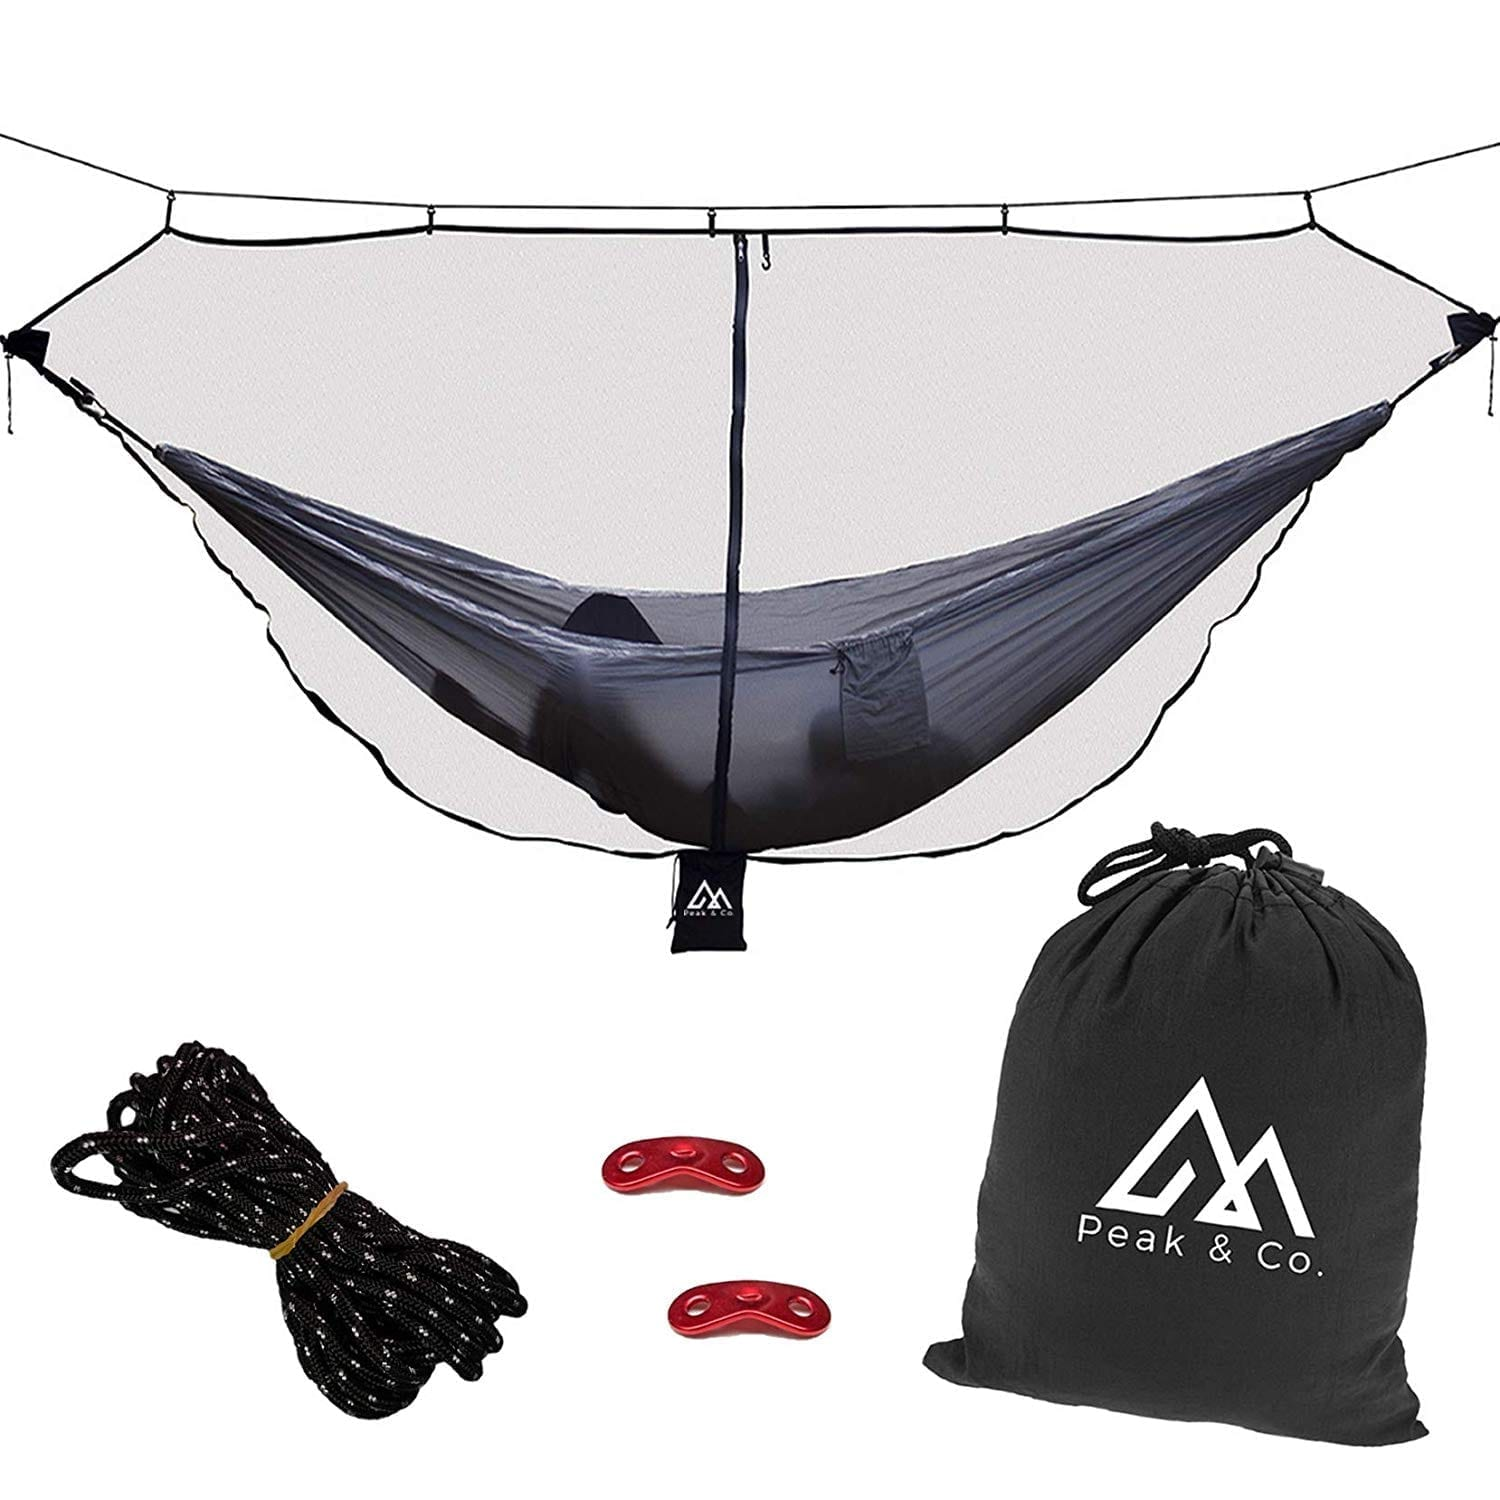 Peak & Co. Hammock Bug & Mosquito Net